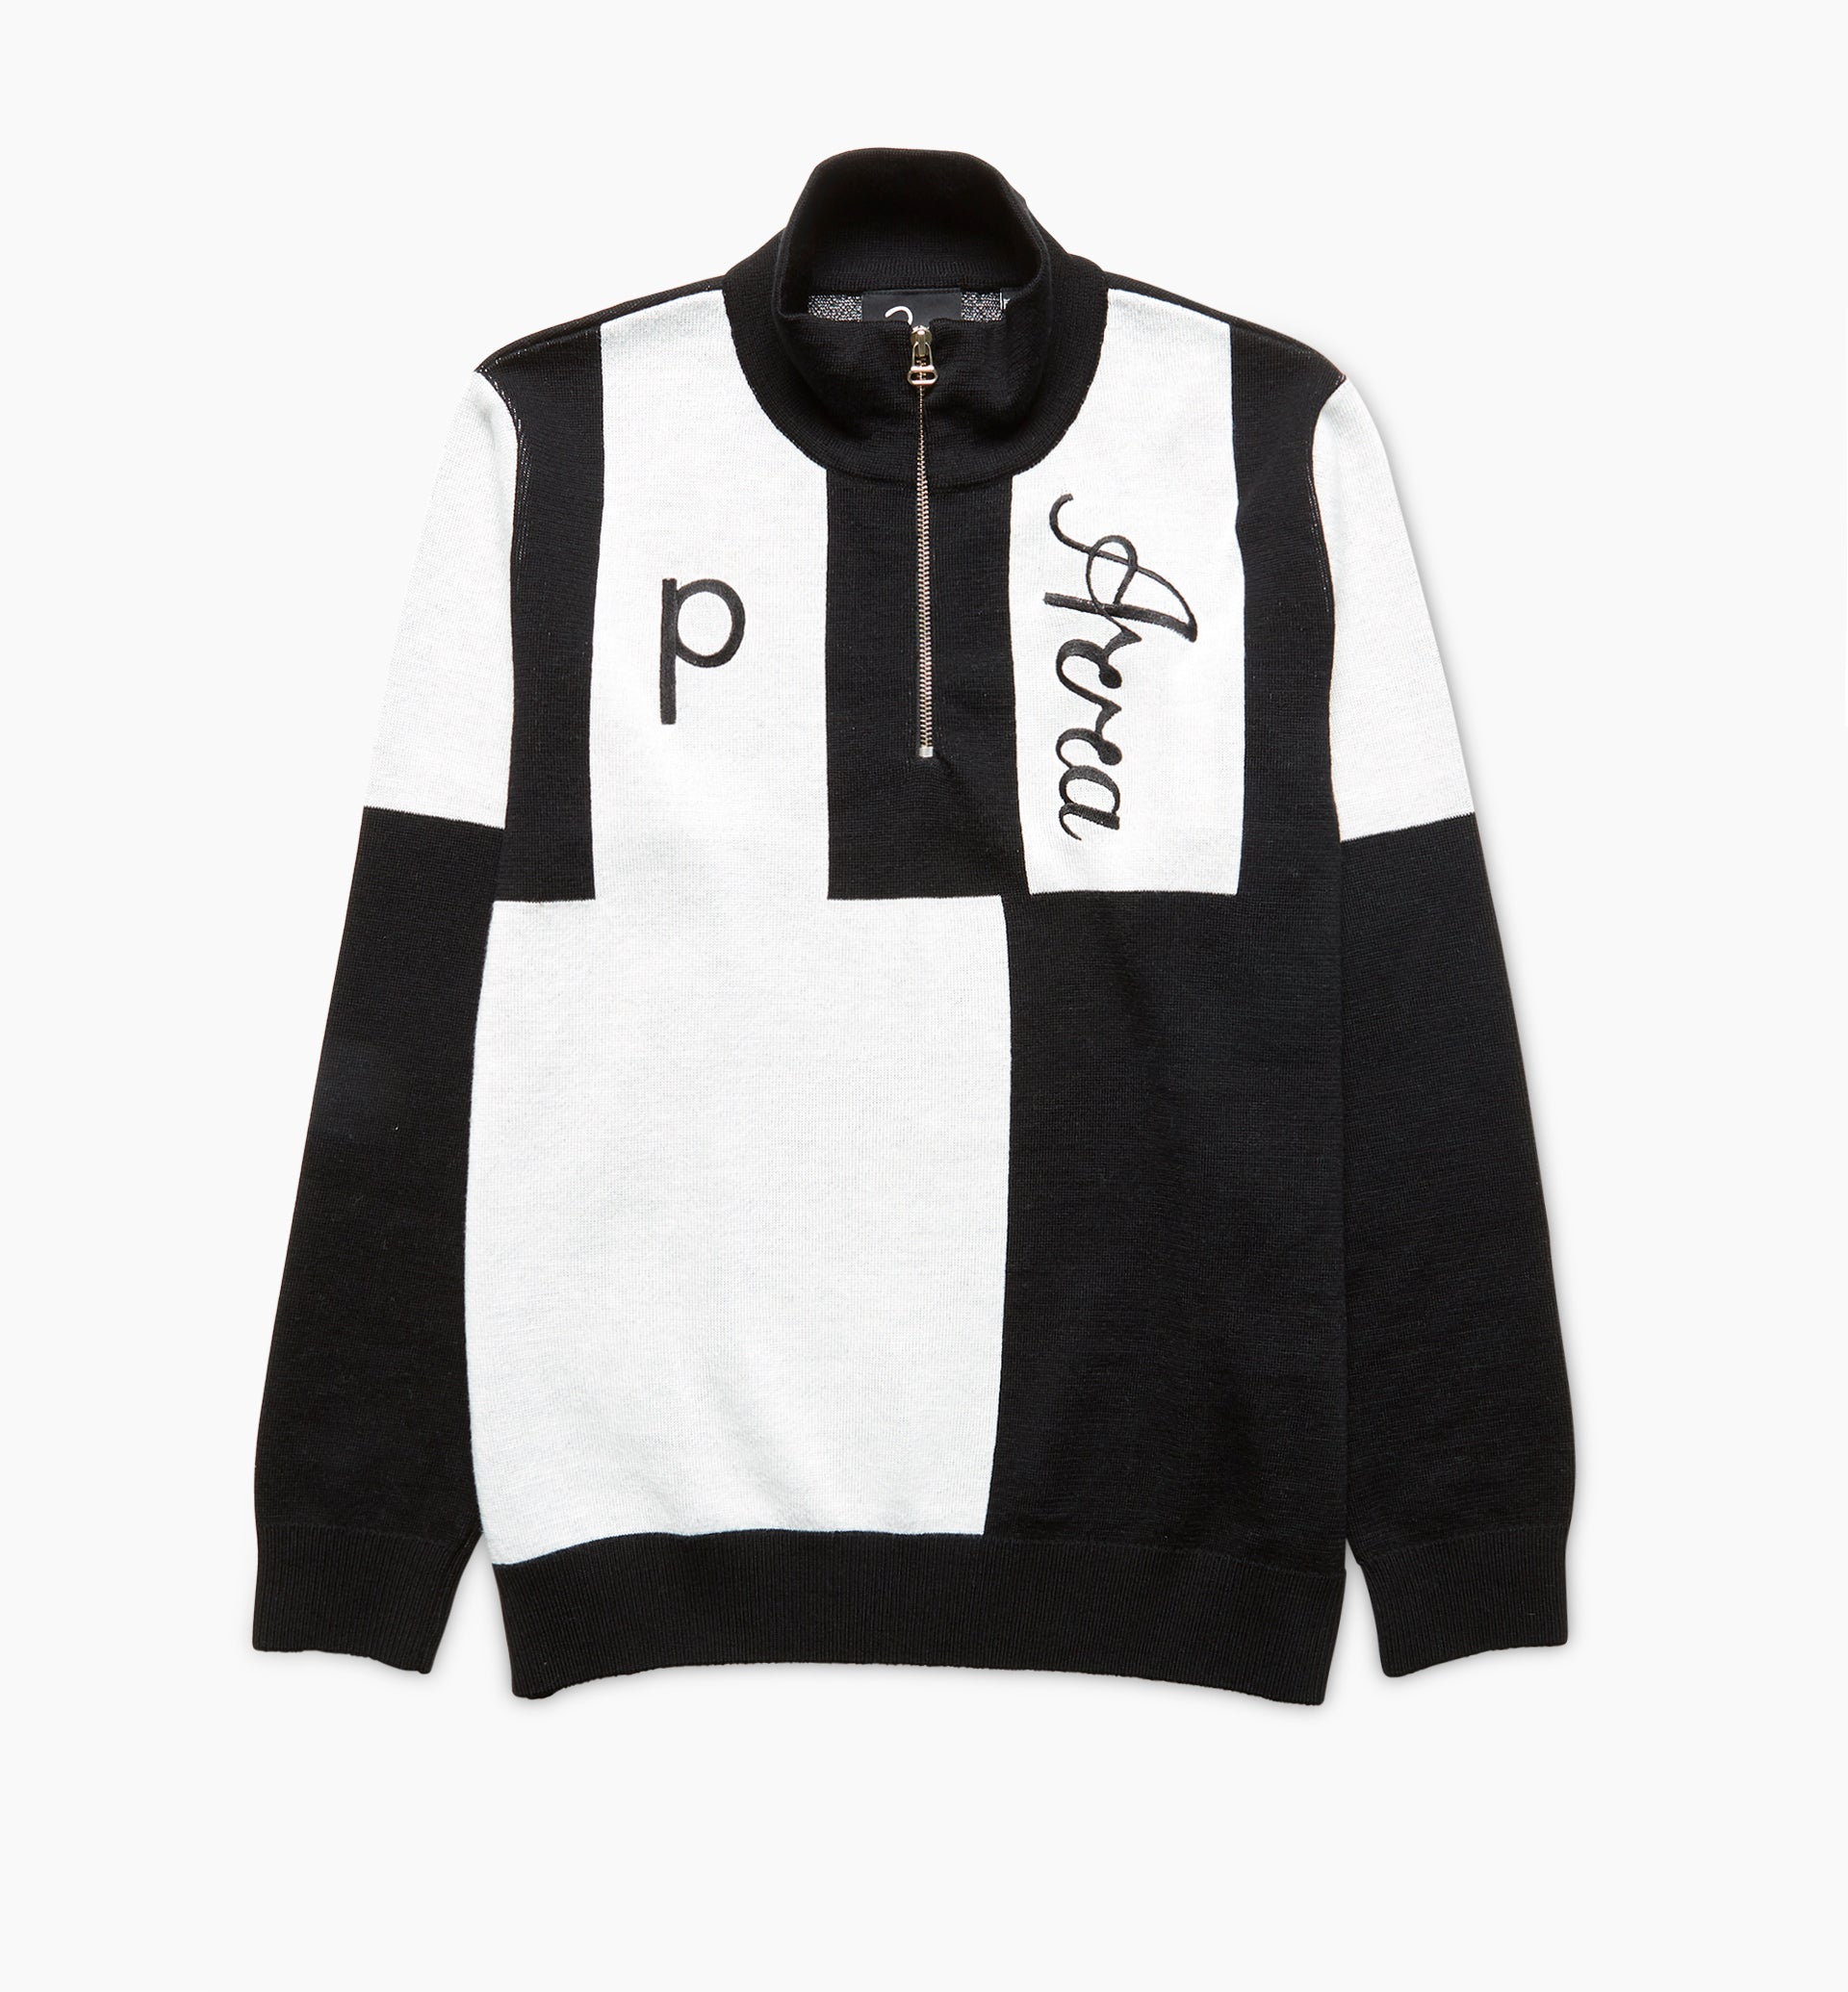 Parra - quarter zip knitted pullover